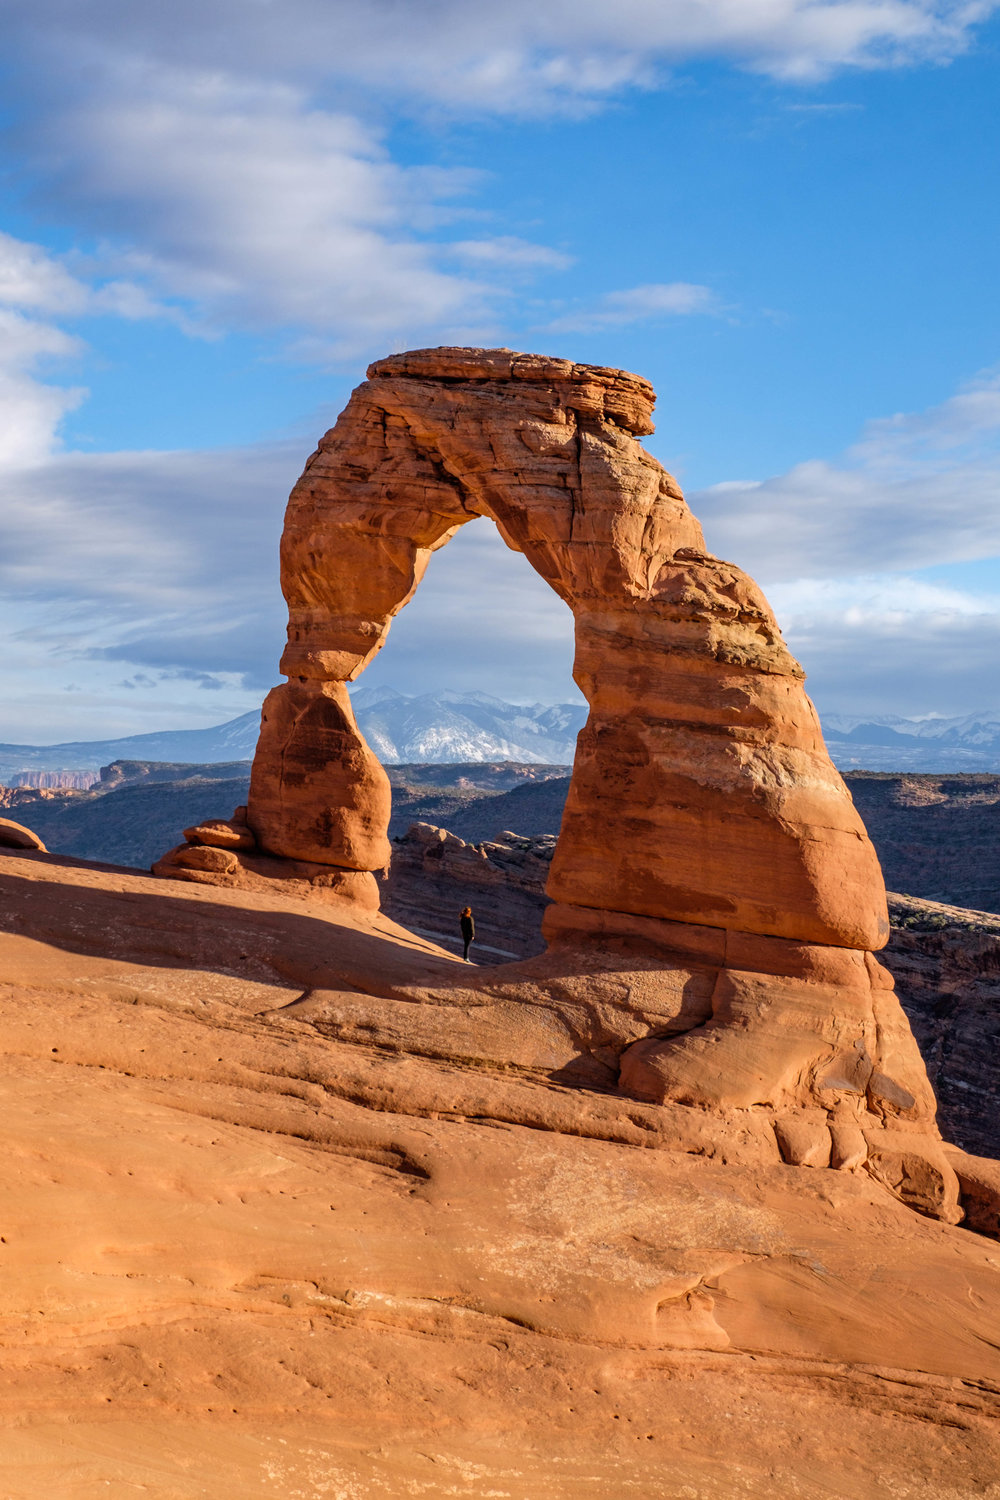 One of the best viewpoints in the entire park system: Delicate Arch.